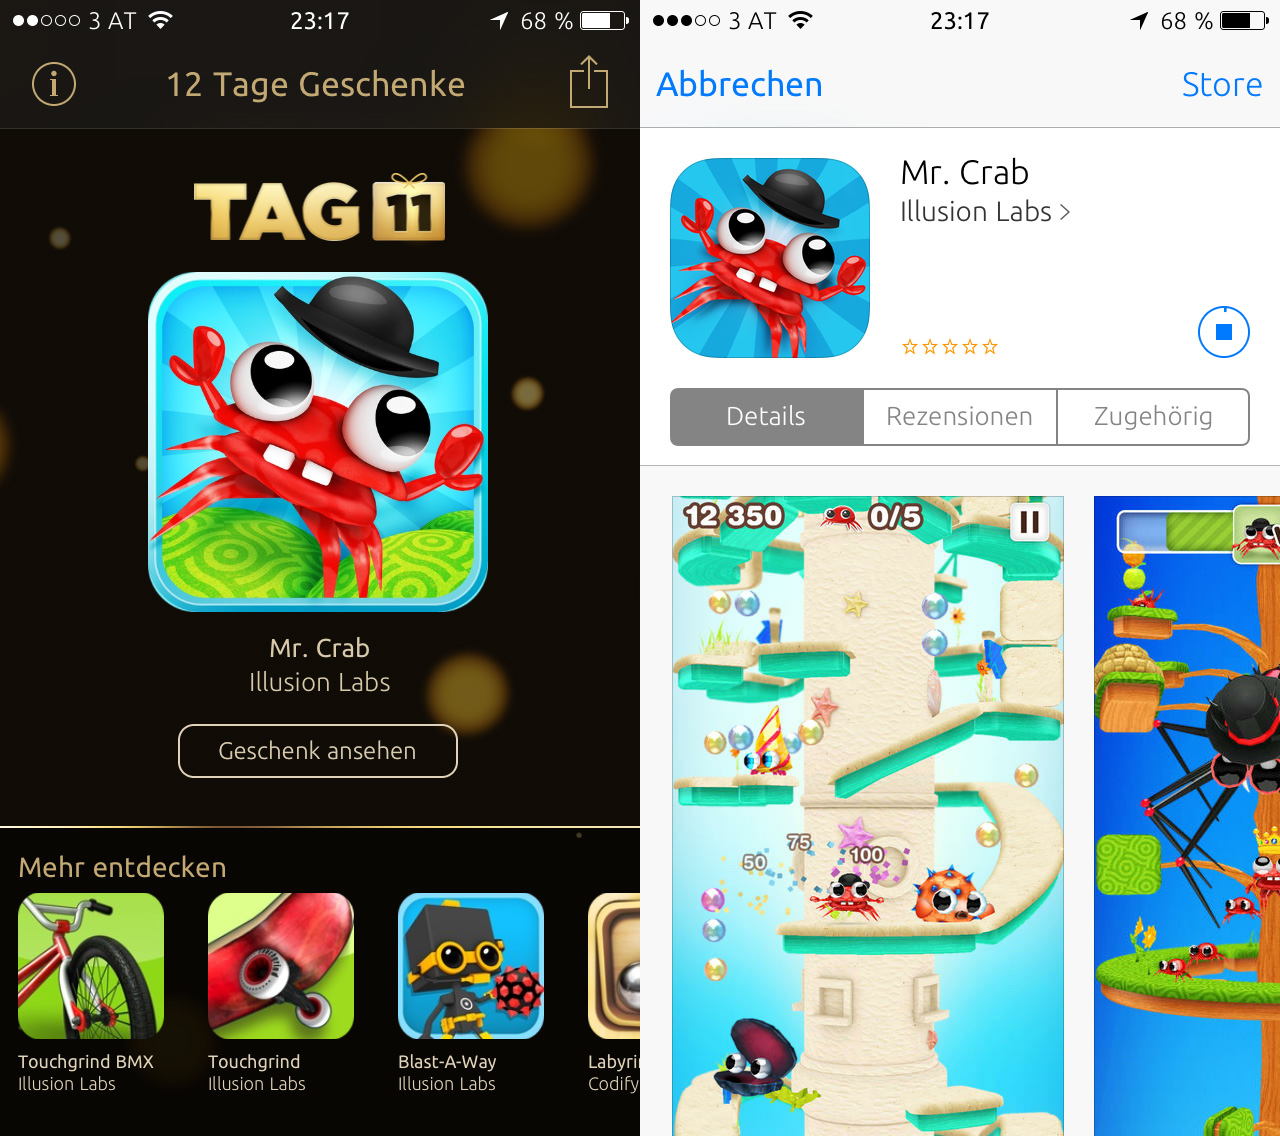 12 Tage Geschenke App Tag 11: Mr. Crab - Kostenlos, download, review, ios 7, hack4life, Fabian Geissler, iphone, ipod touch, ipad, apple, itunes, gratis